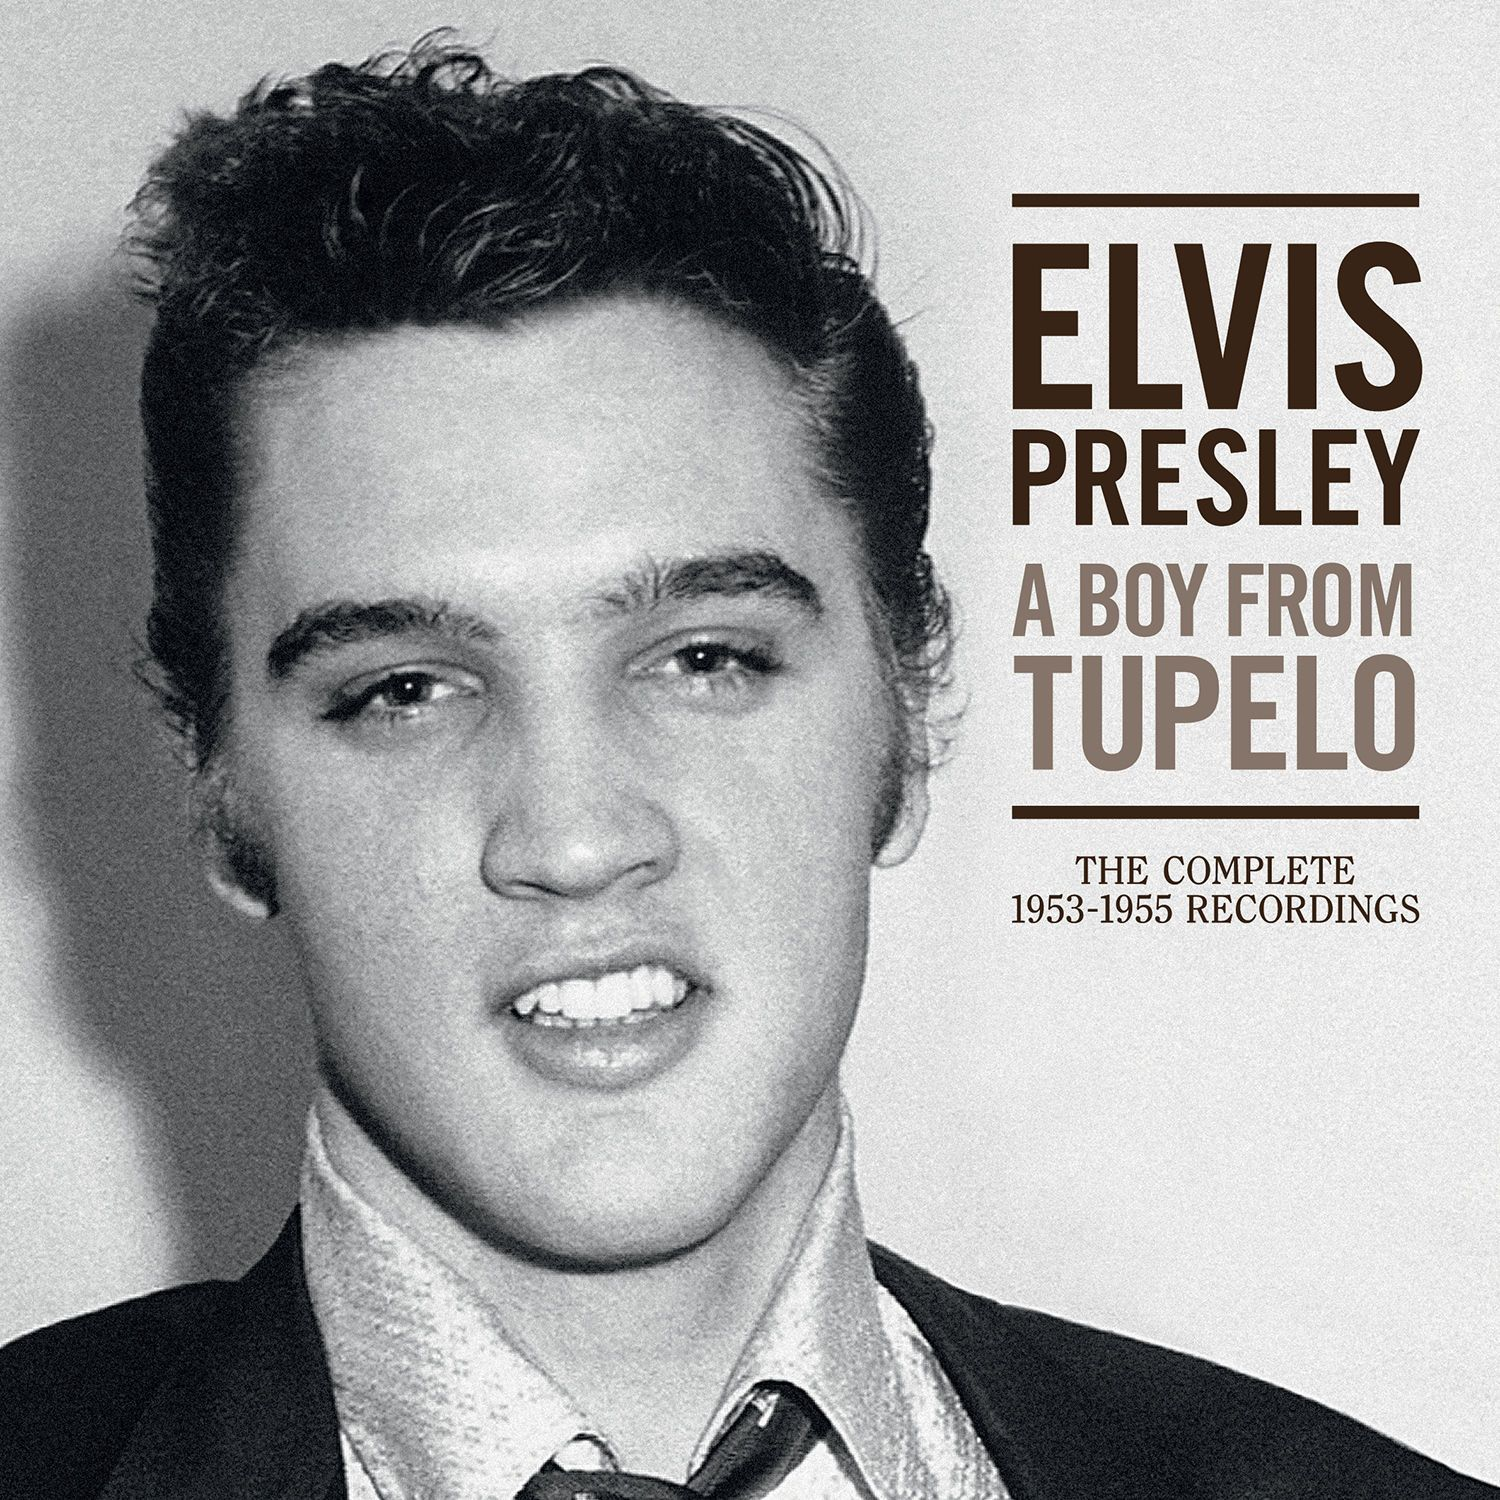 Elvis Presley - A Boy From Tupelo - The Complete 1953-1955 Recordings album cover